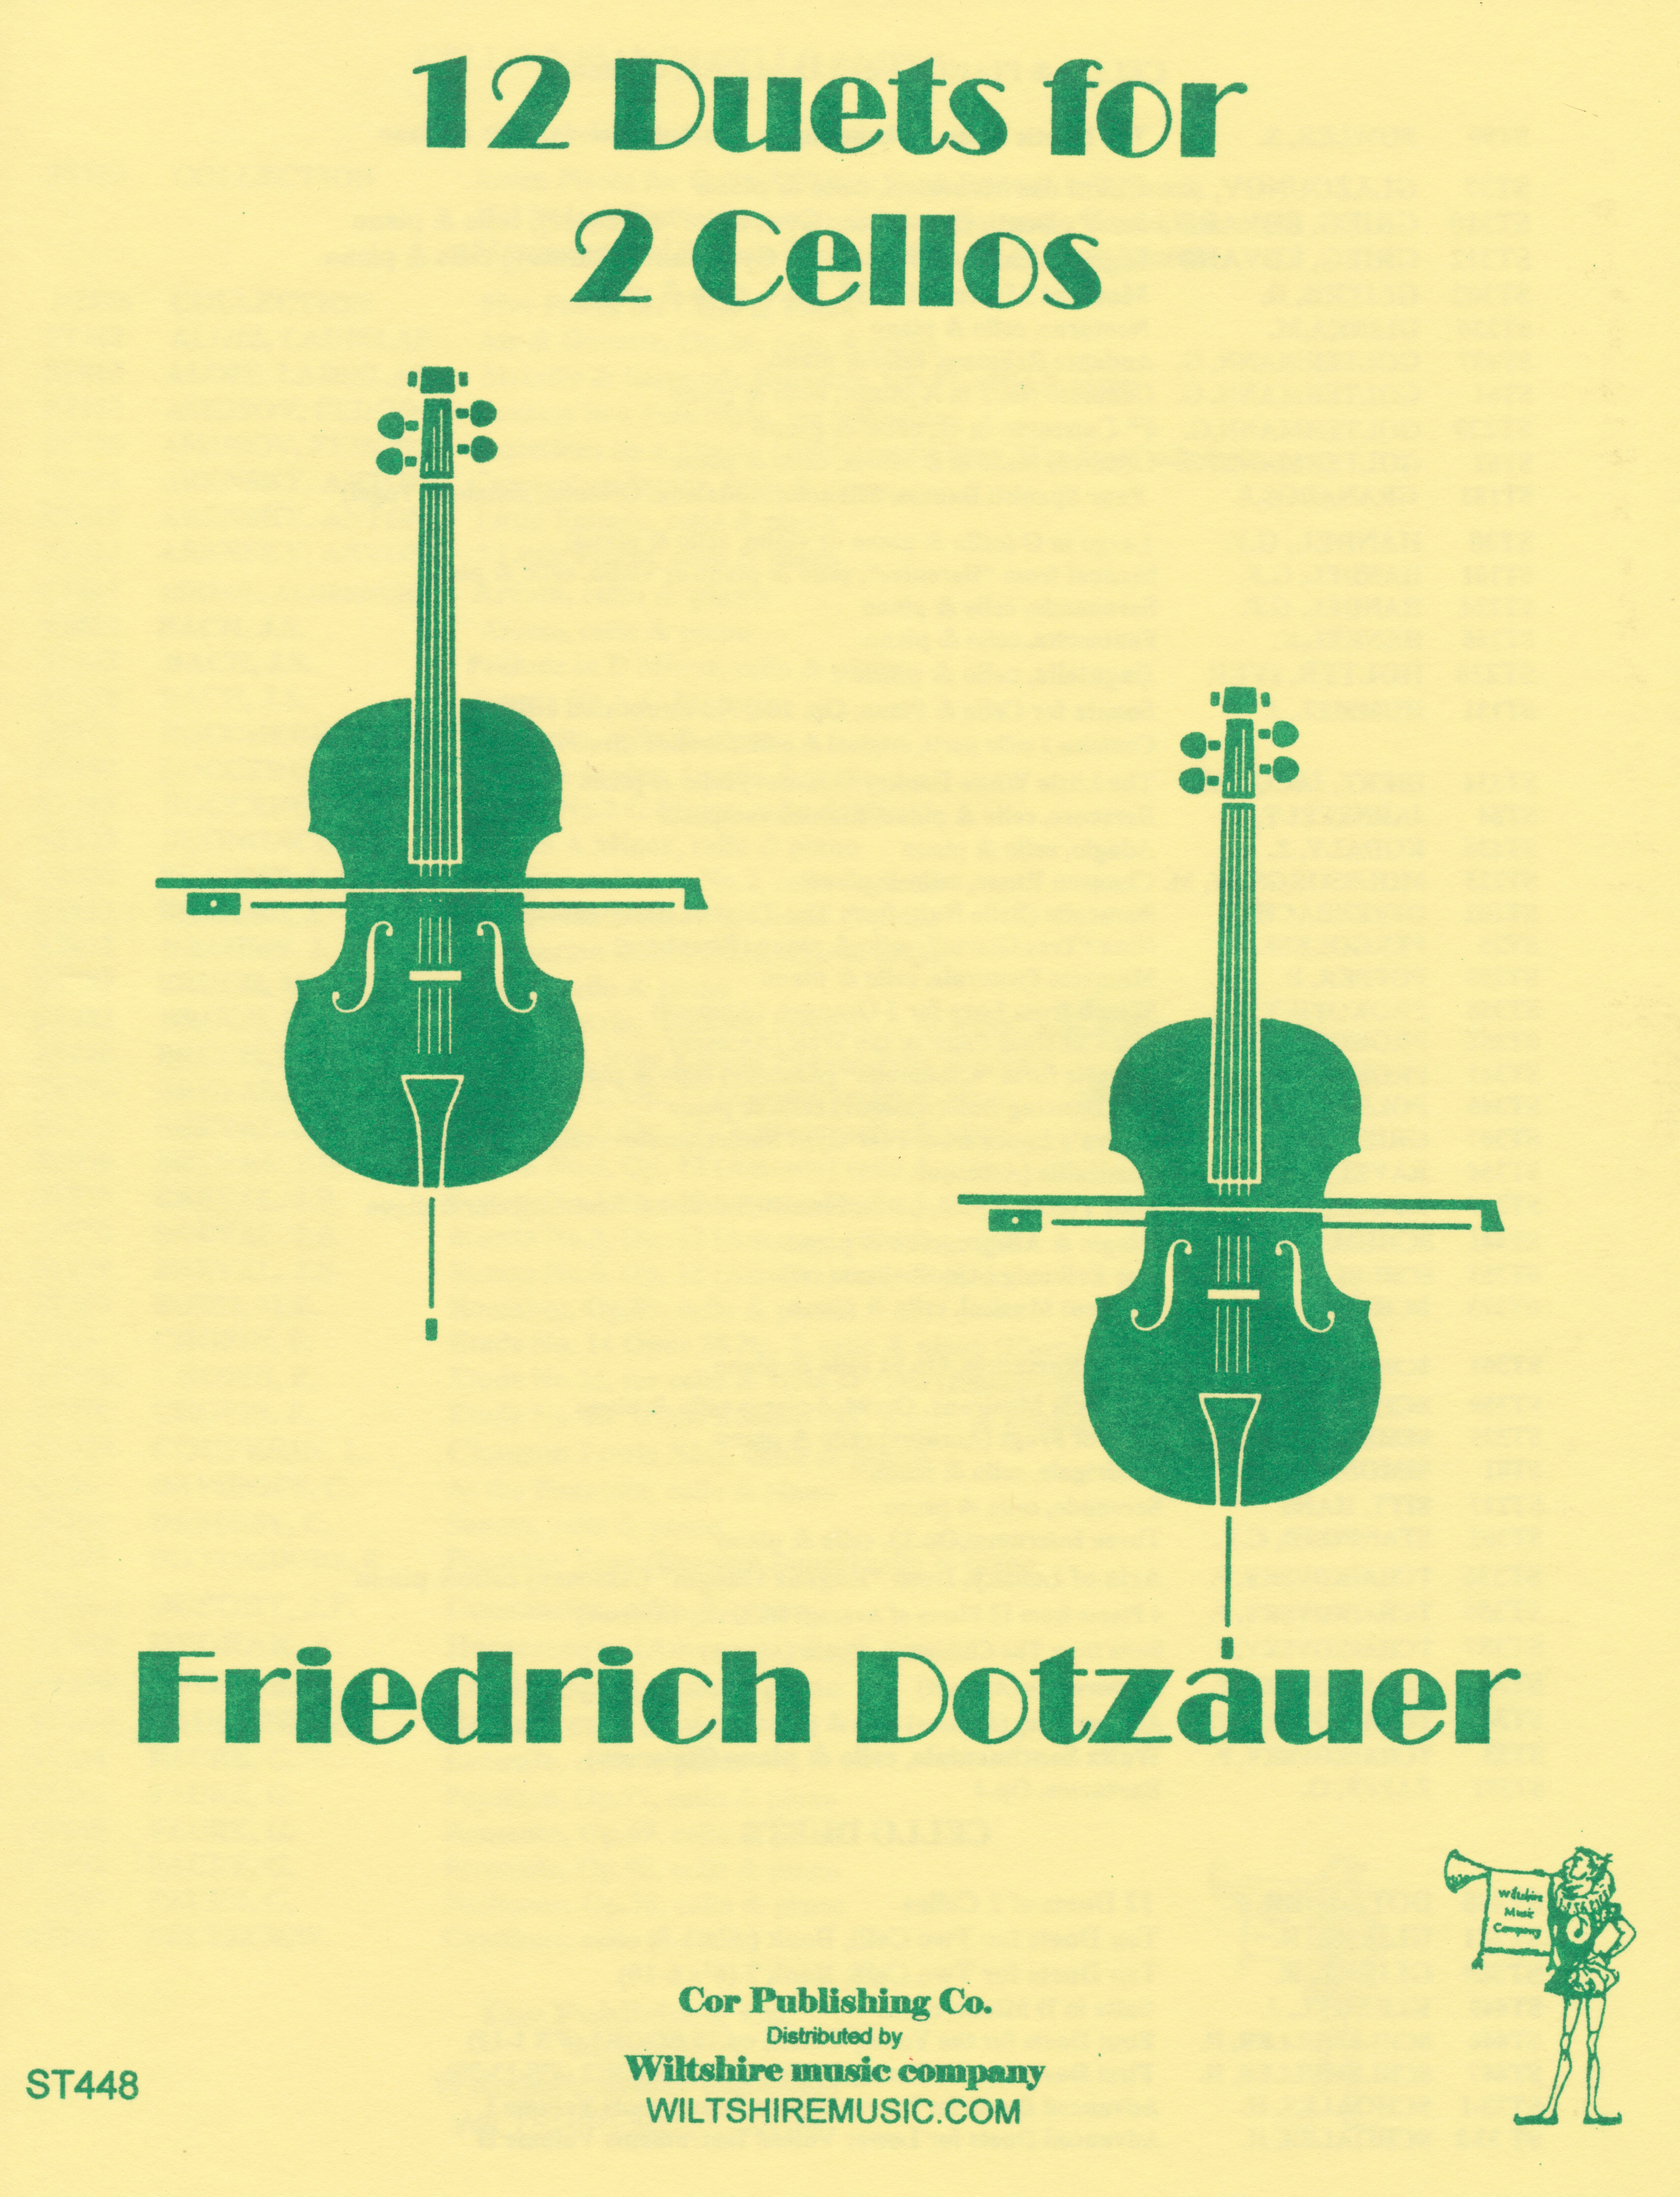 12 Duets for 2 Cellos, Op.63, Friedrich Dotzauer